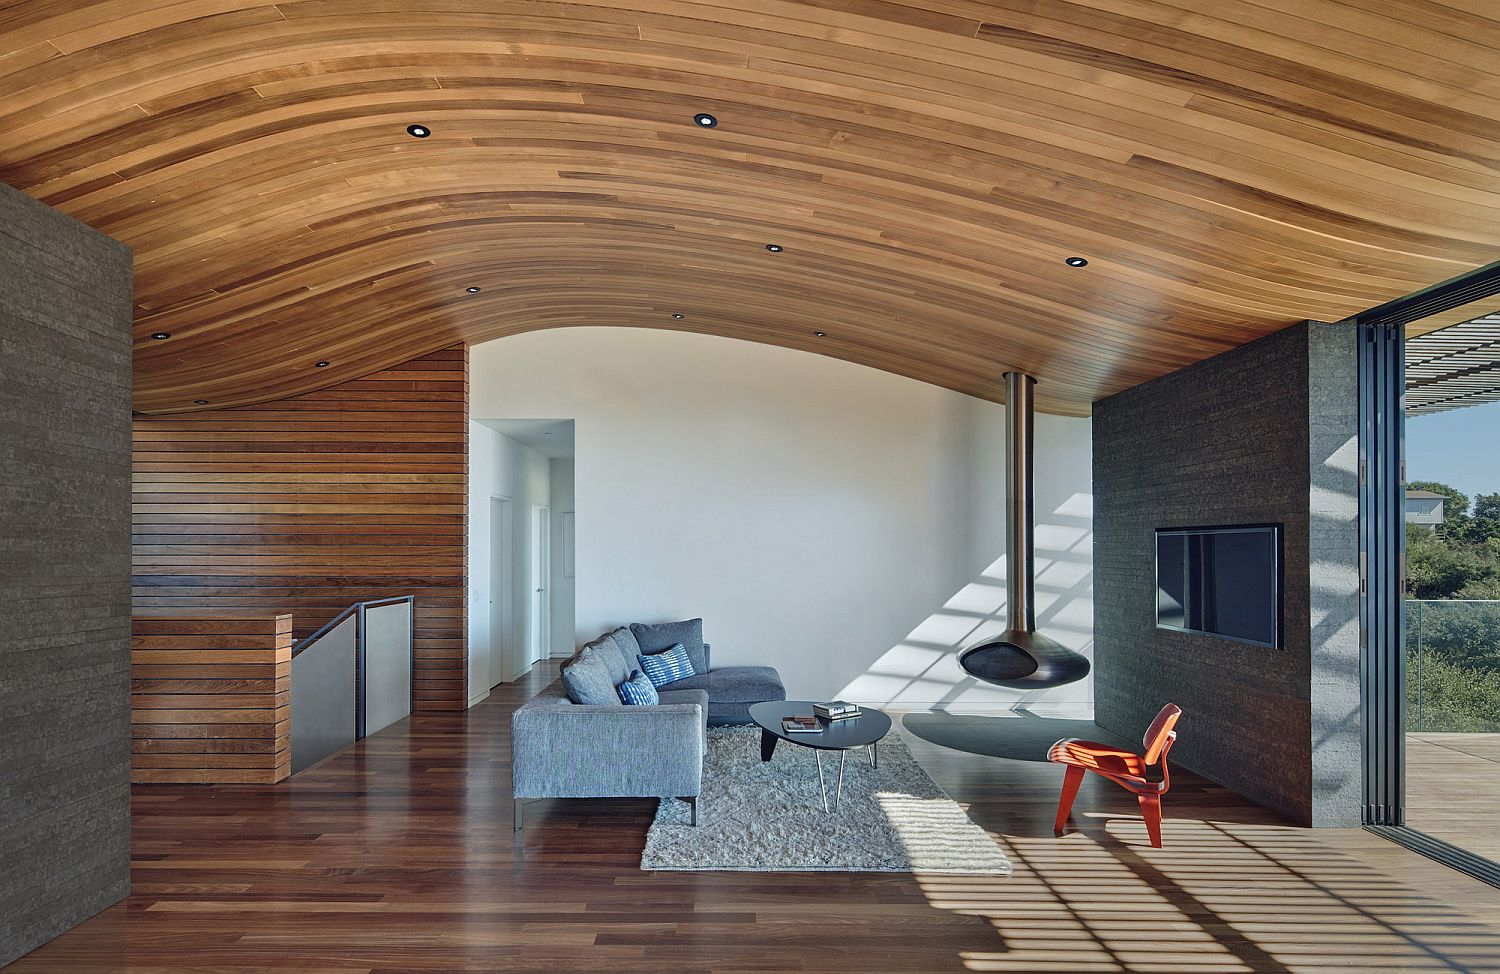 Curved-wooden-ceiling-steals-the-show-at-this-mountaintop-residence